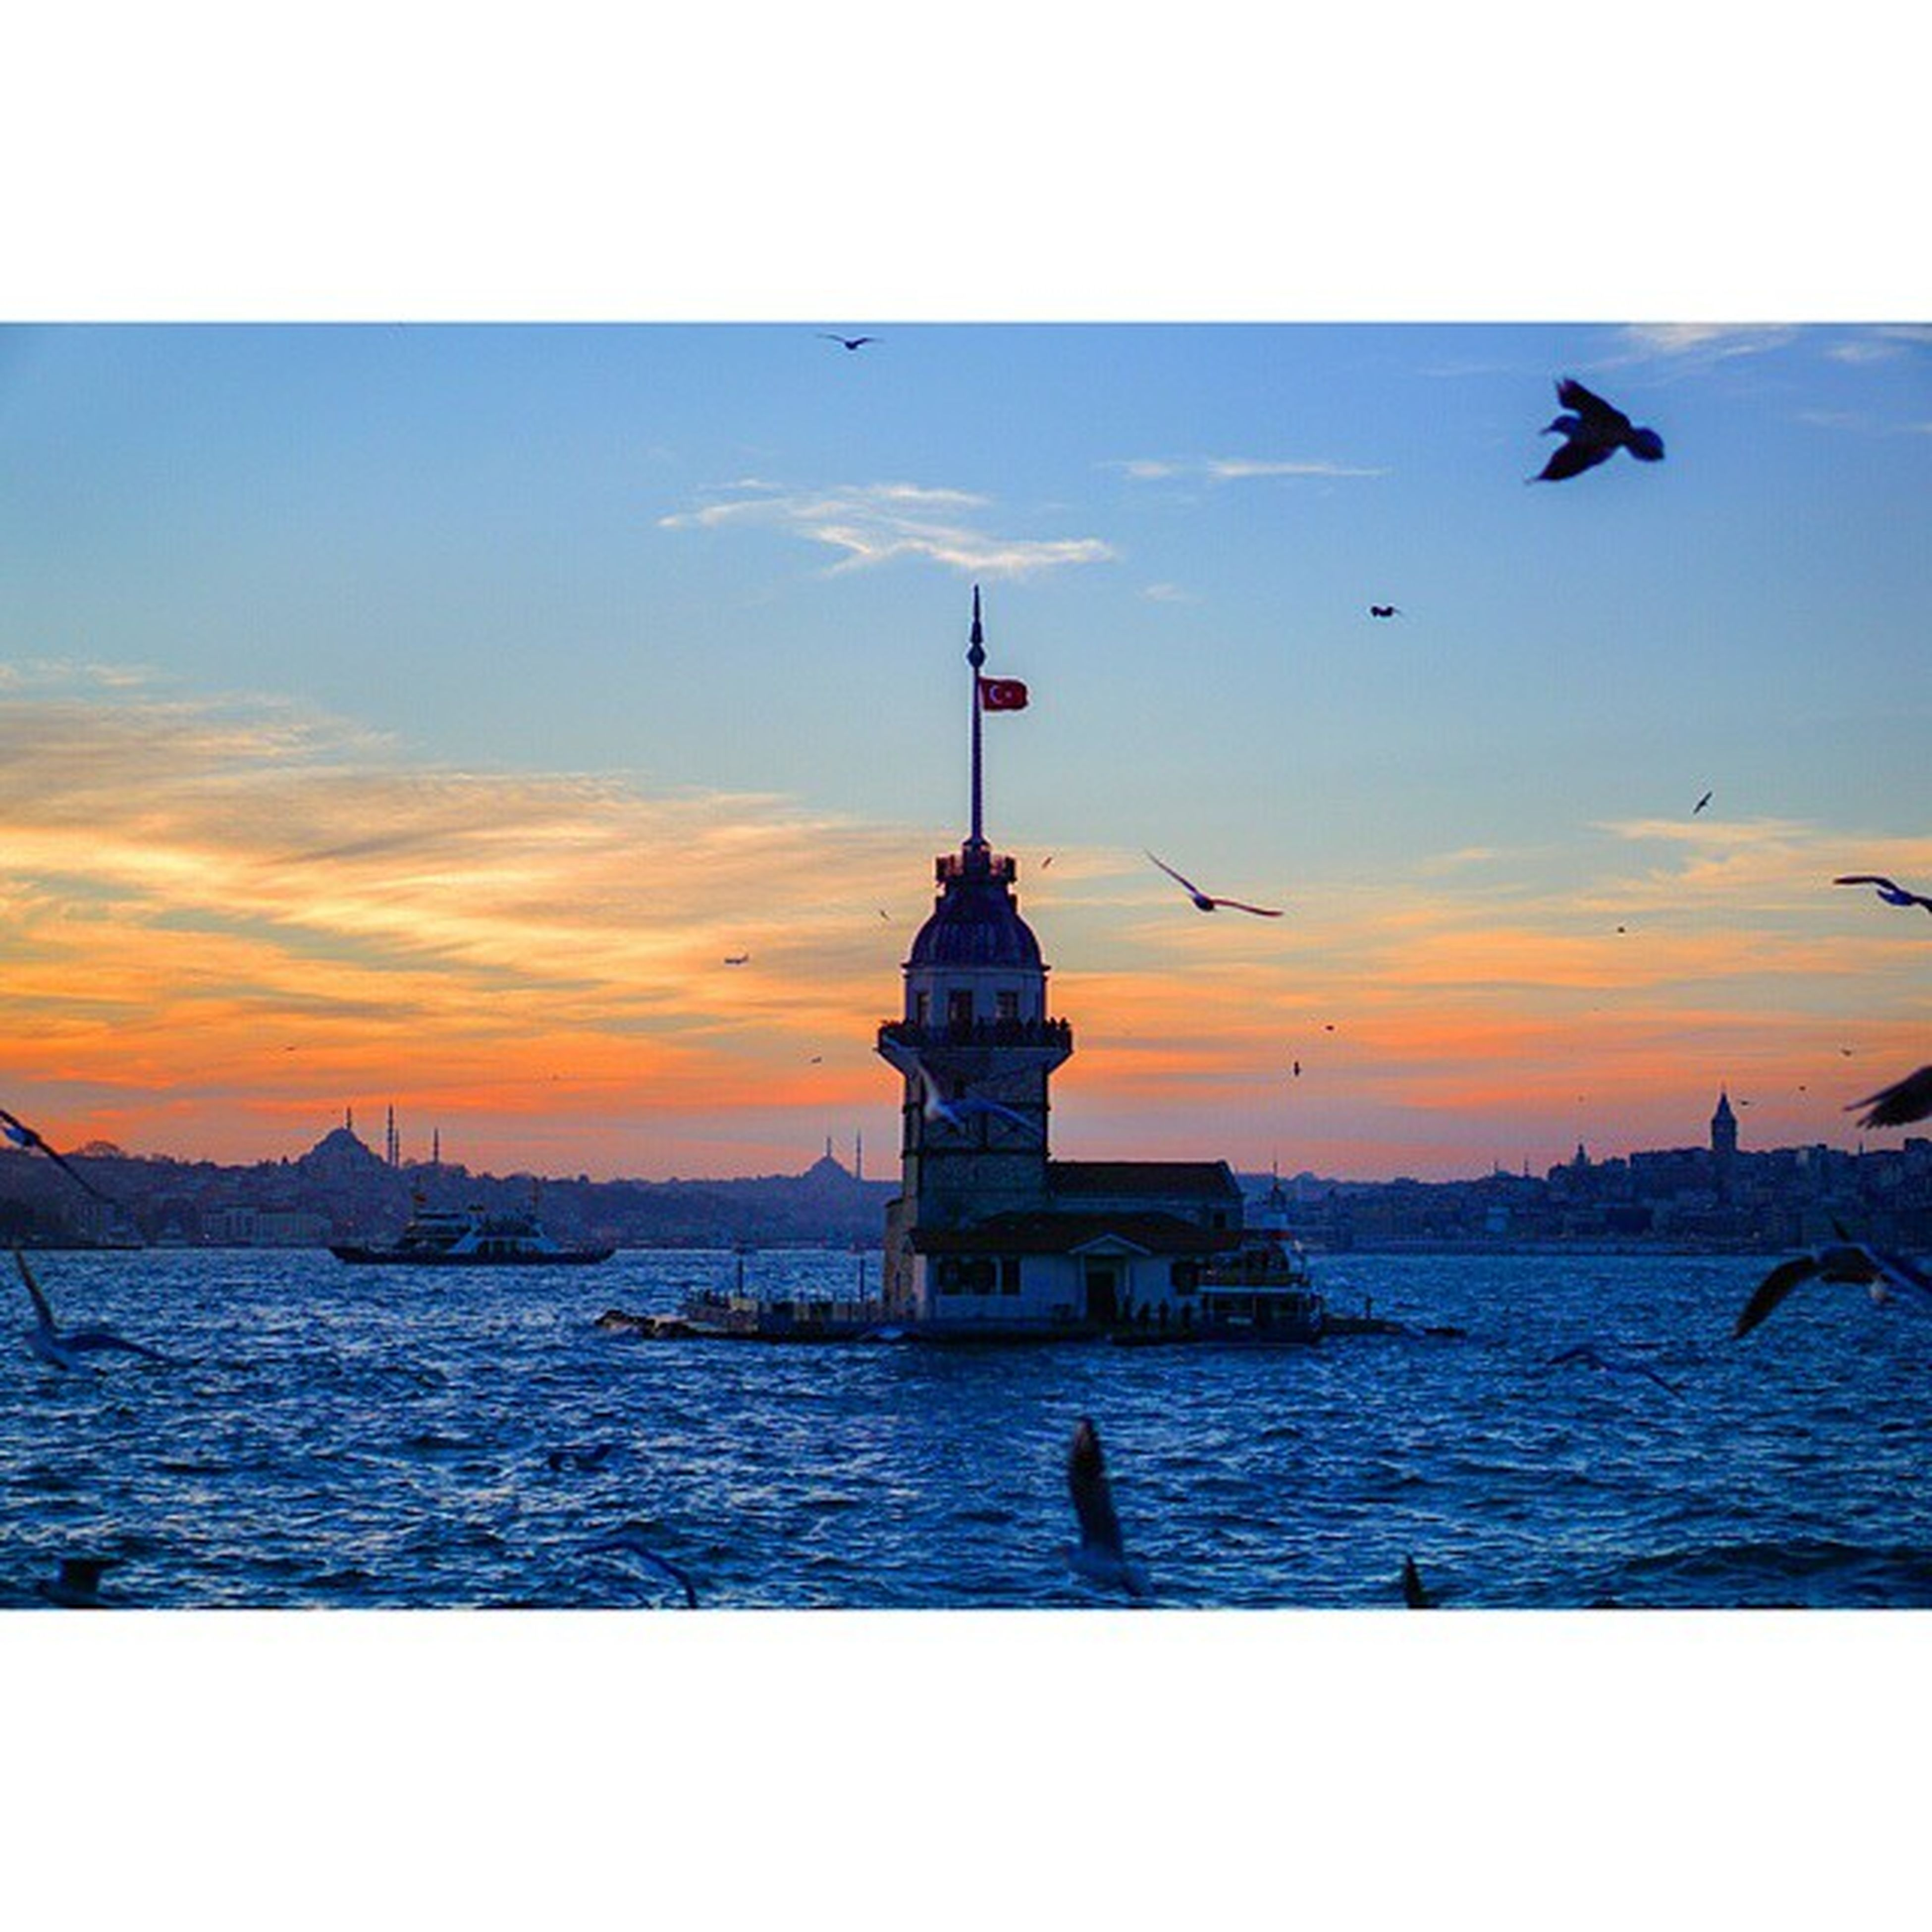 sea, water, horizon over water, sunset, sky, bird, scenics, tranquility, beauty in nature, tranquil scene, nature, transfer print, animal themes, lighthouse, auto post production filter, wildlife, silhouette, animals in the wild, built structure, idyllic